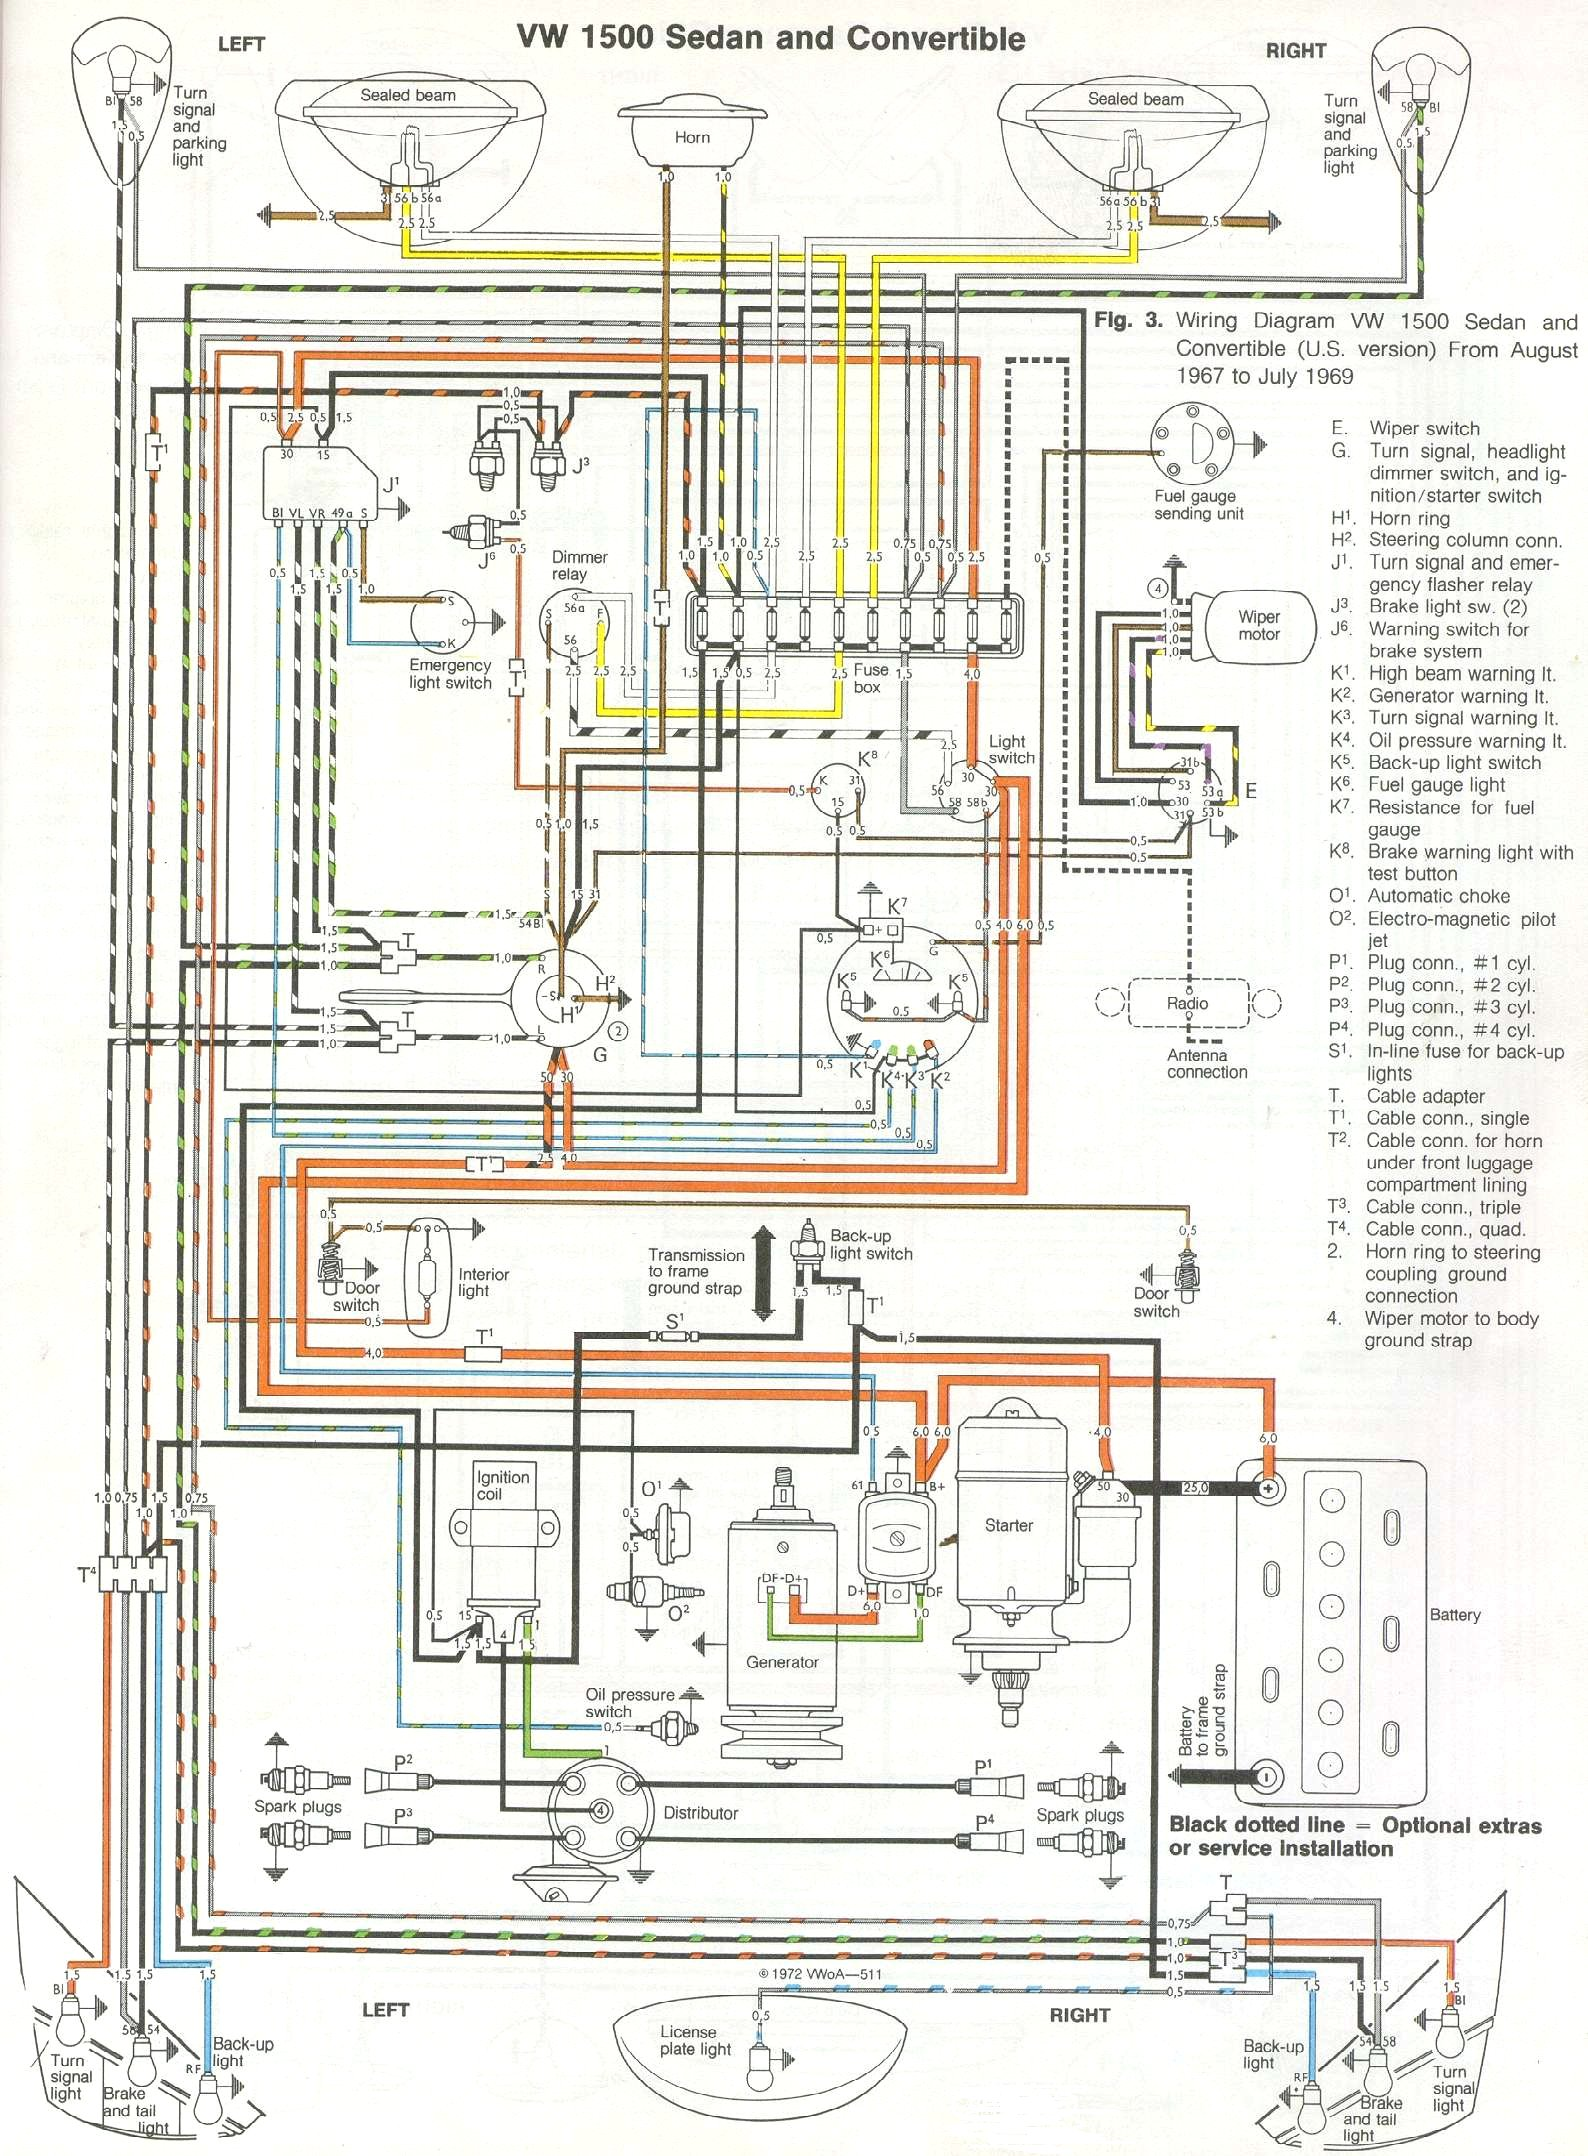 1969 71 beetle wiring diagram thegoldenbug com rh thegoldenbug com 1972 super beetle wiring diagram 1972 vw bug fuse diagram